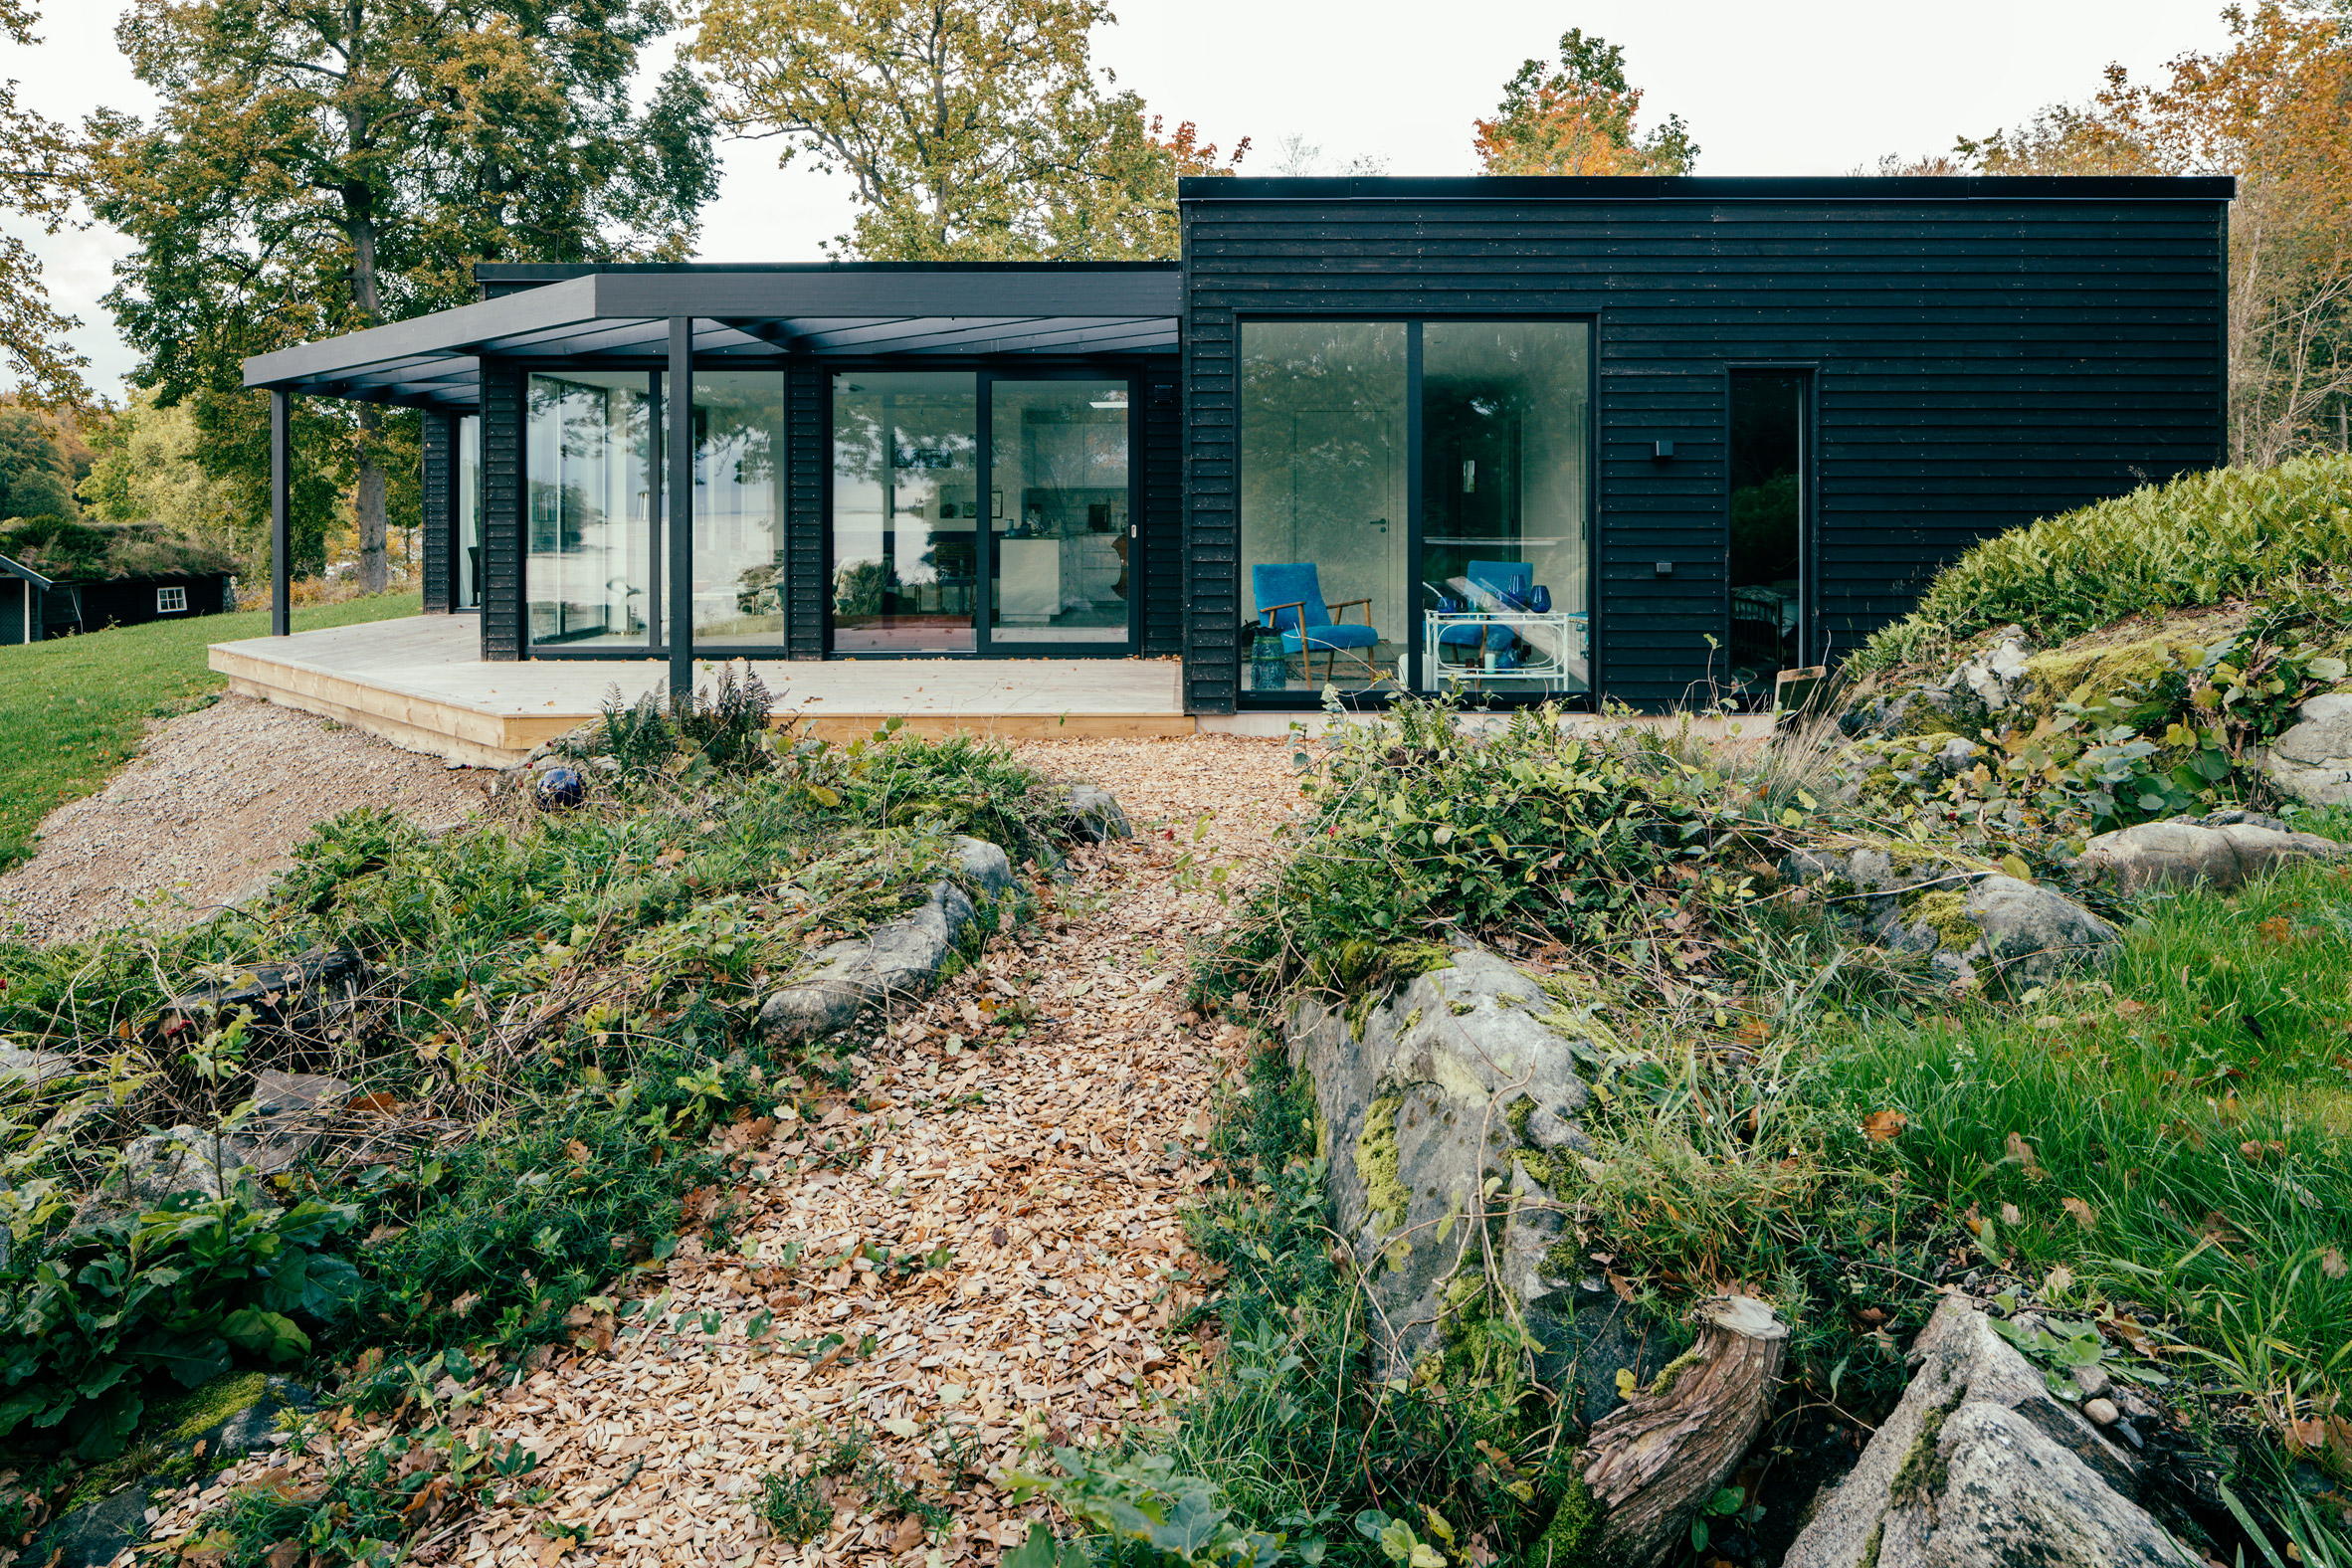 villa-g-andre-pihl-architecture-residential-sweden-holiday-homes_dezeen_2364_col_3.jpg